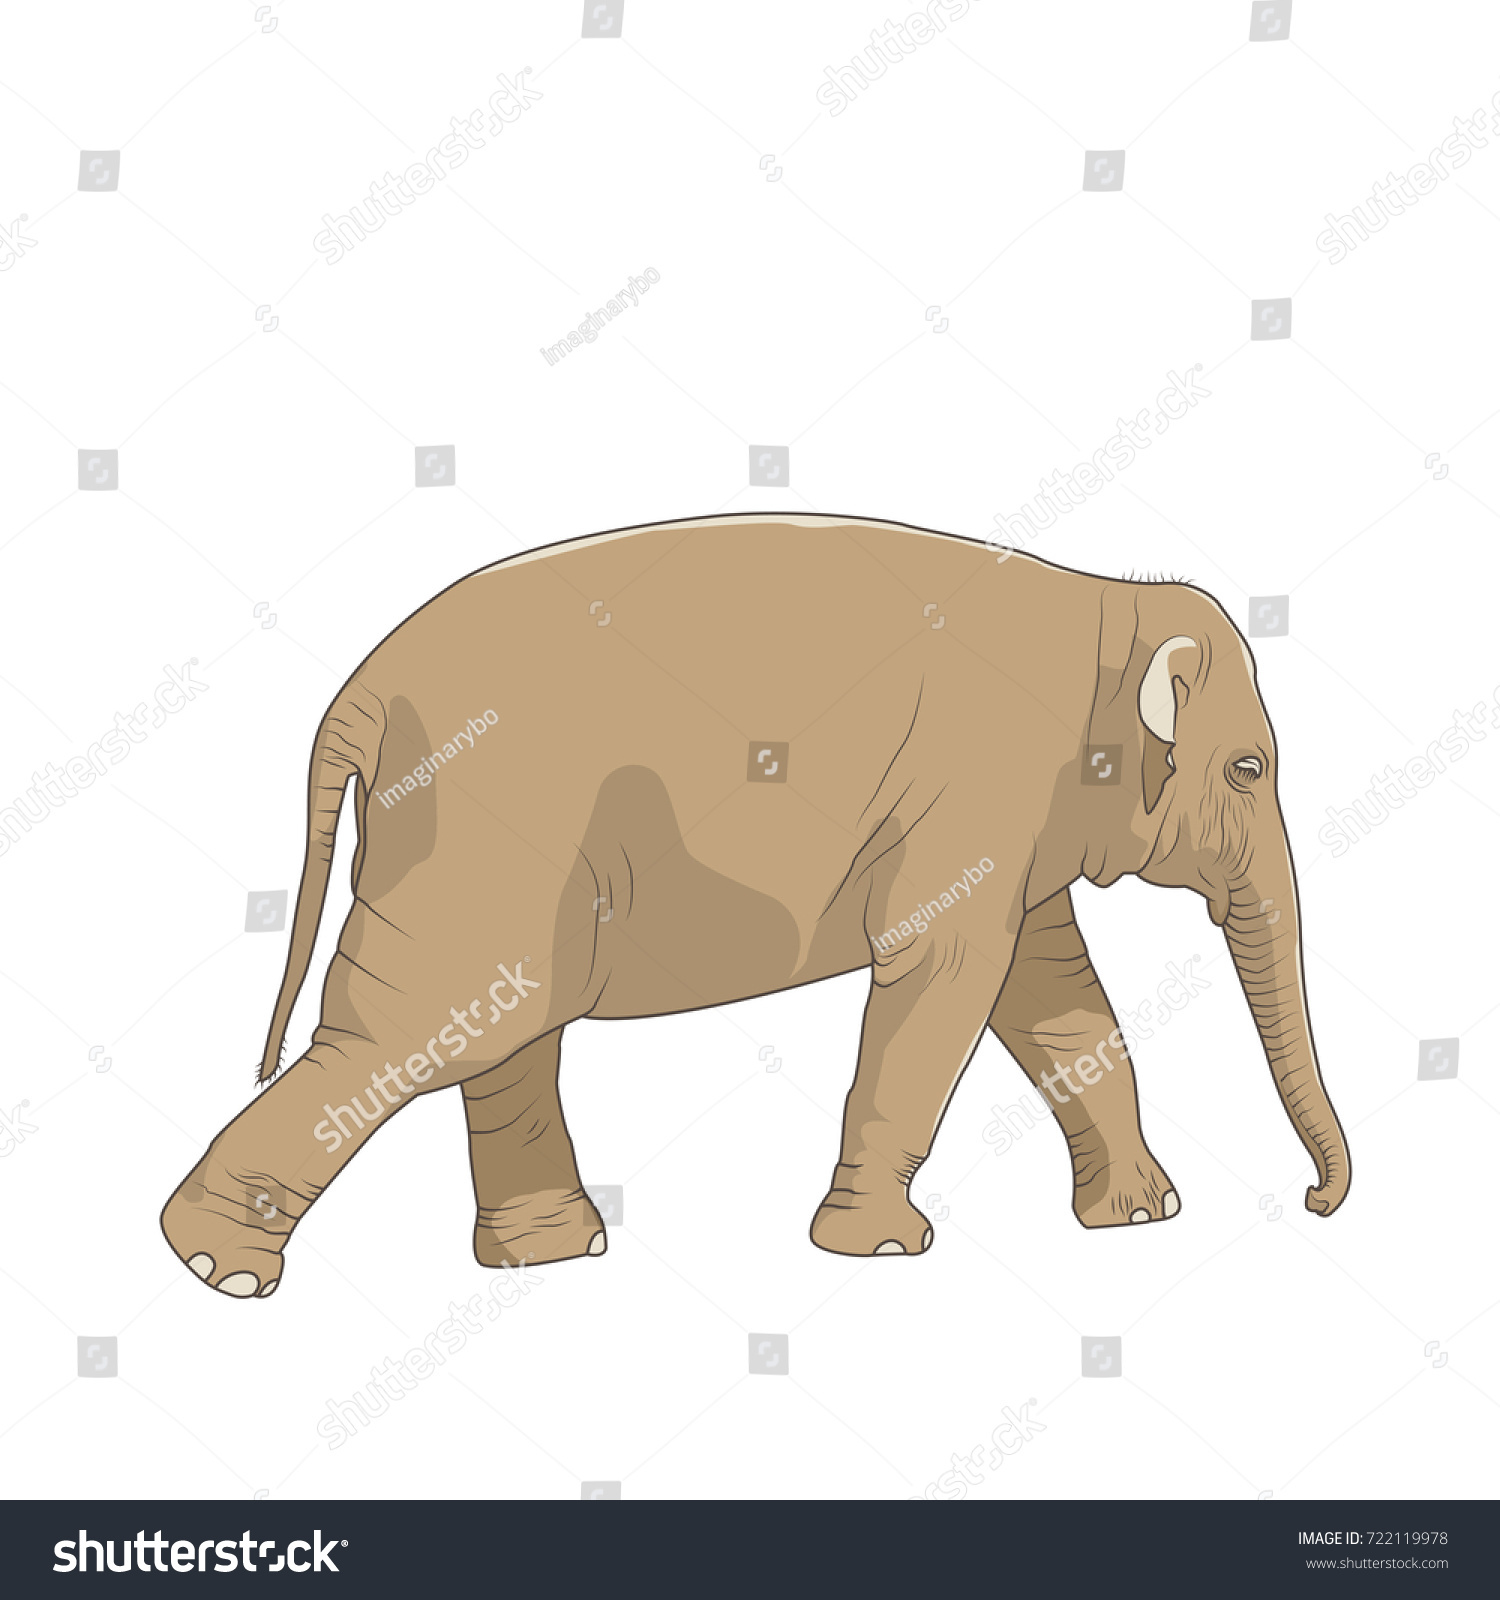 Isolated brown elephant character figure on stock vector 722119978 isolated brown elephant character figure on white background big mammal animal standing striding walking moving sciox Images